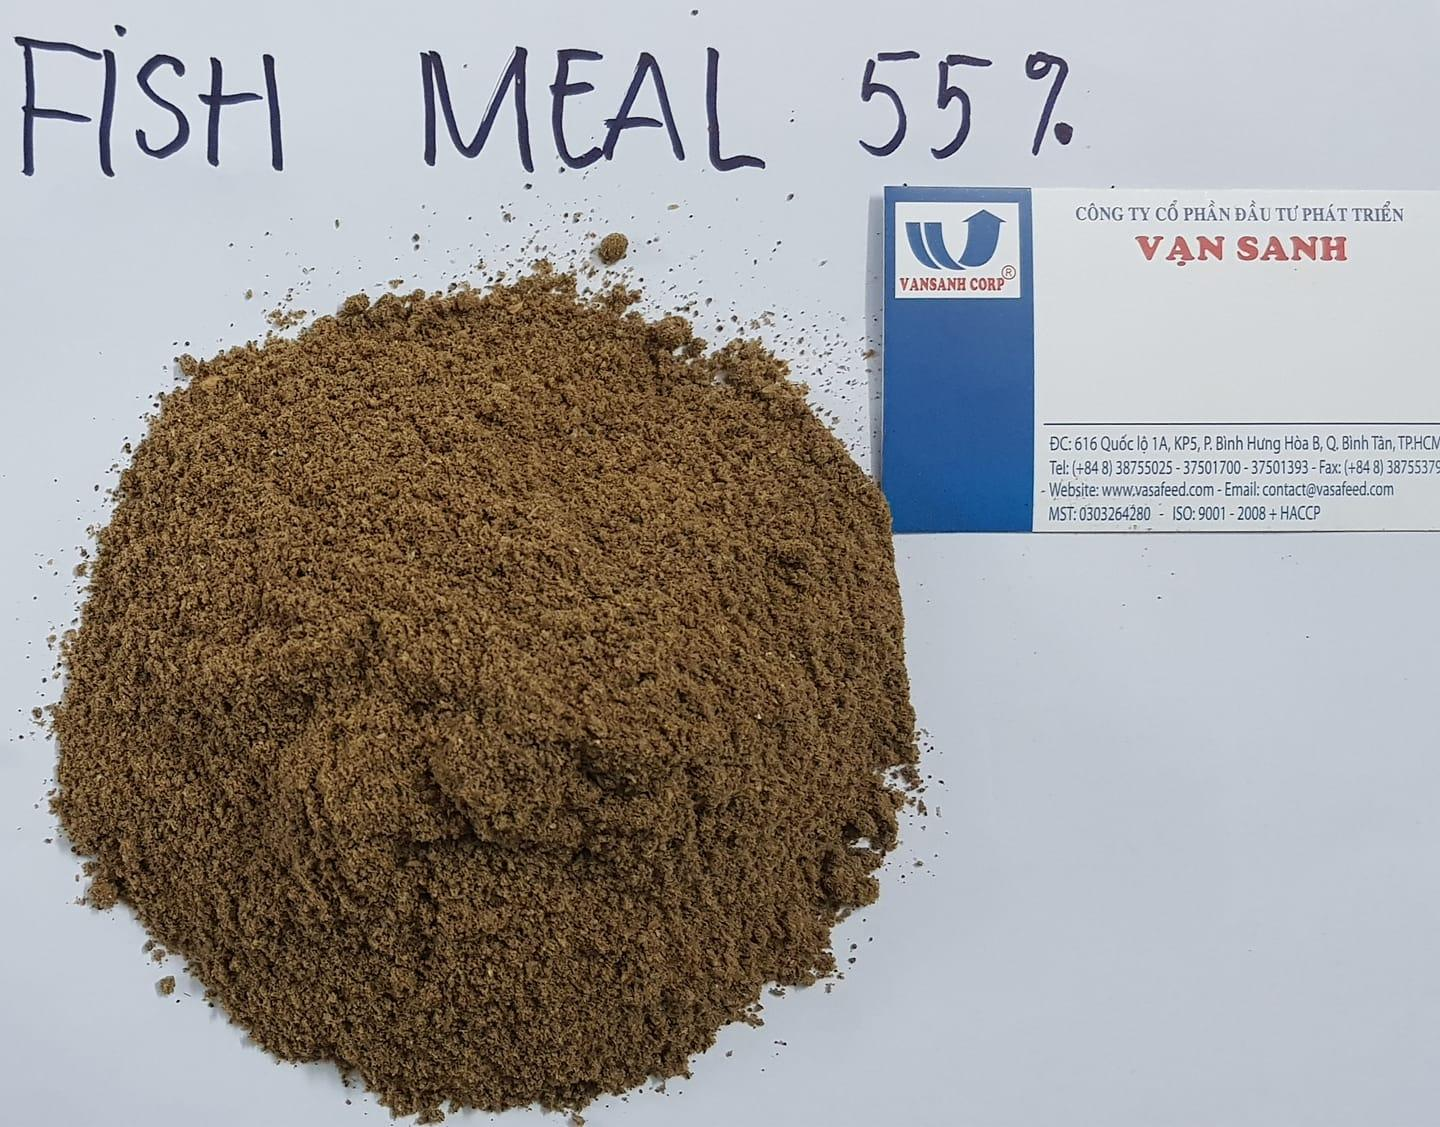 Fish Meal 1